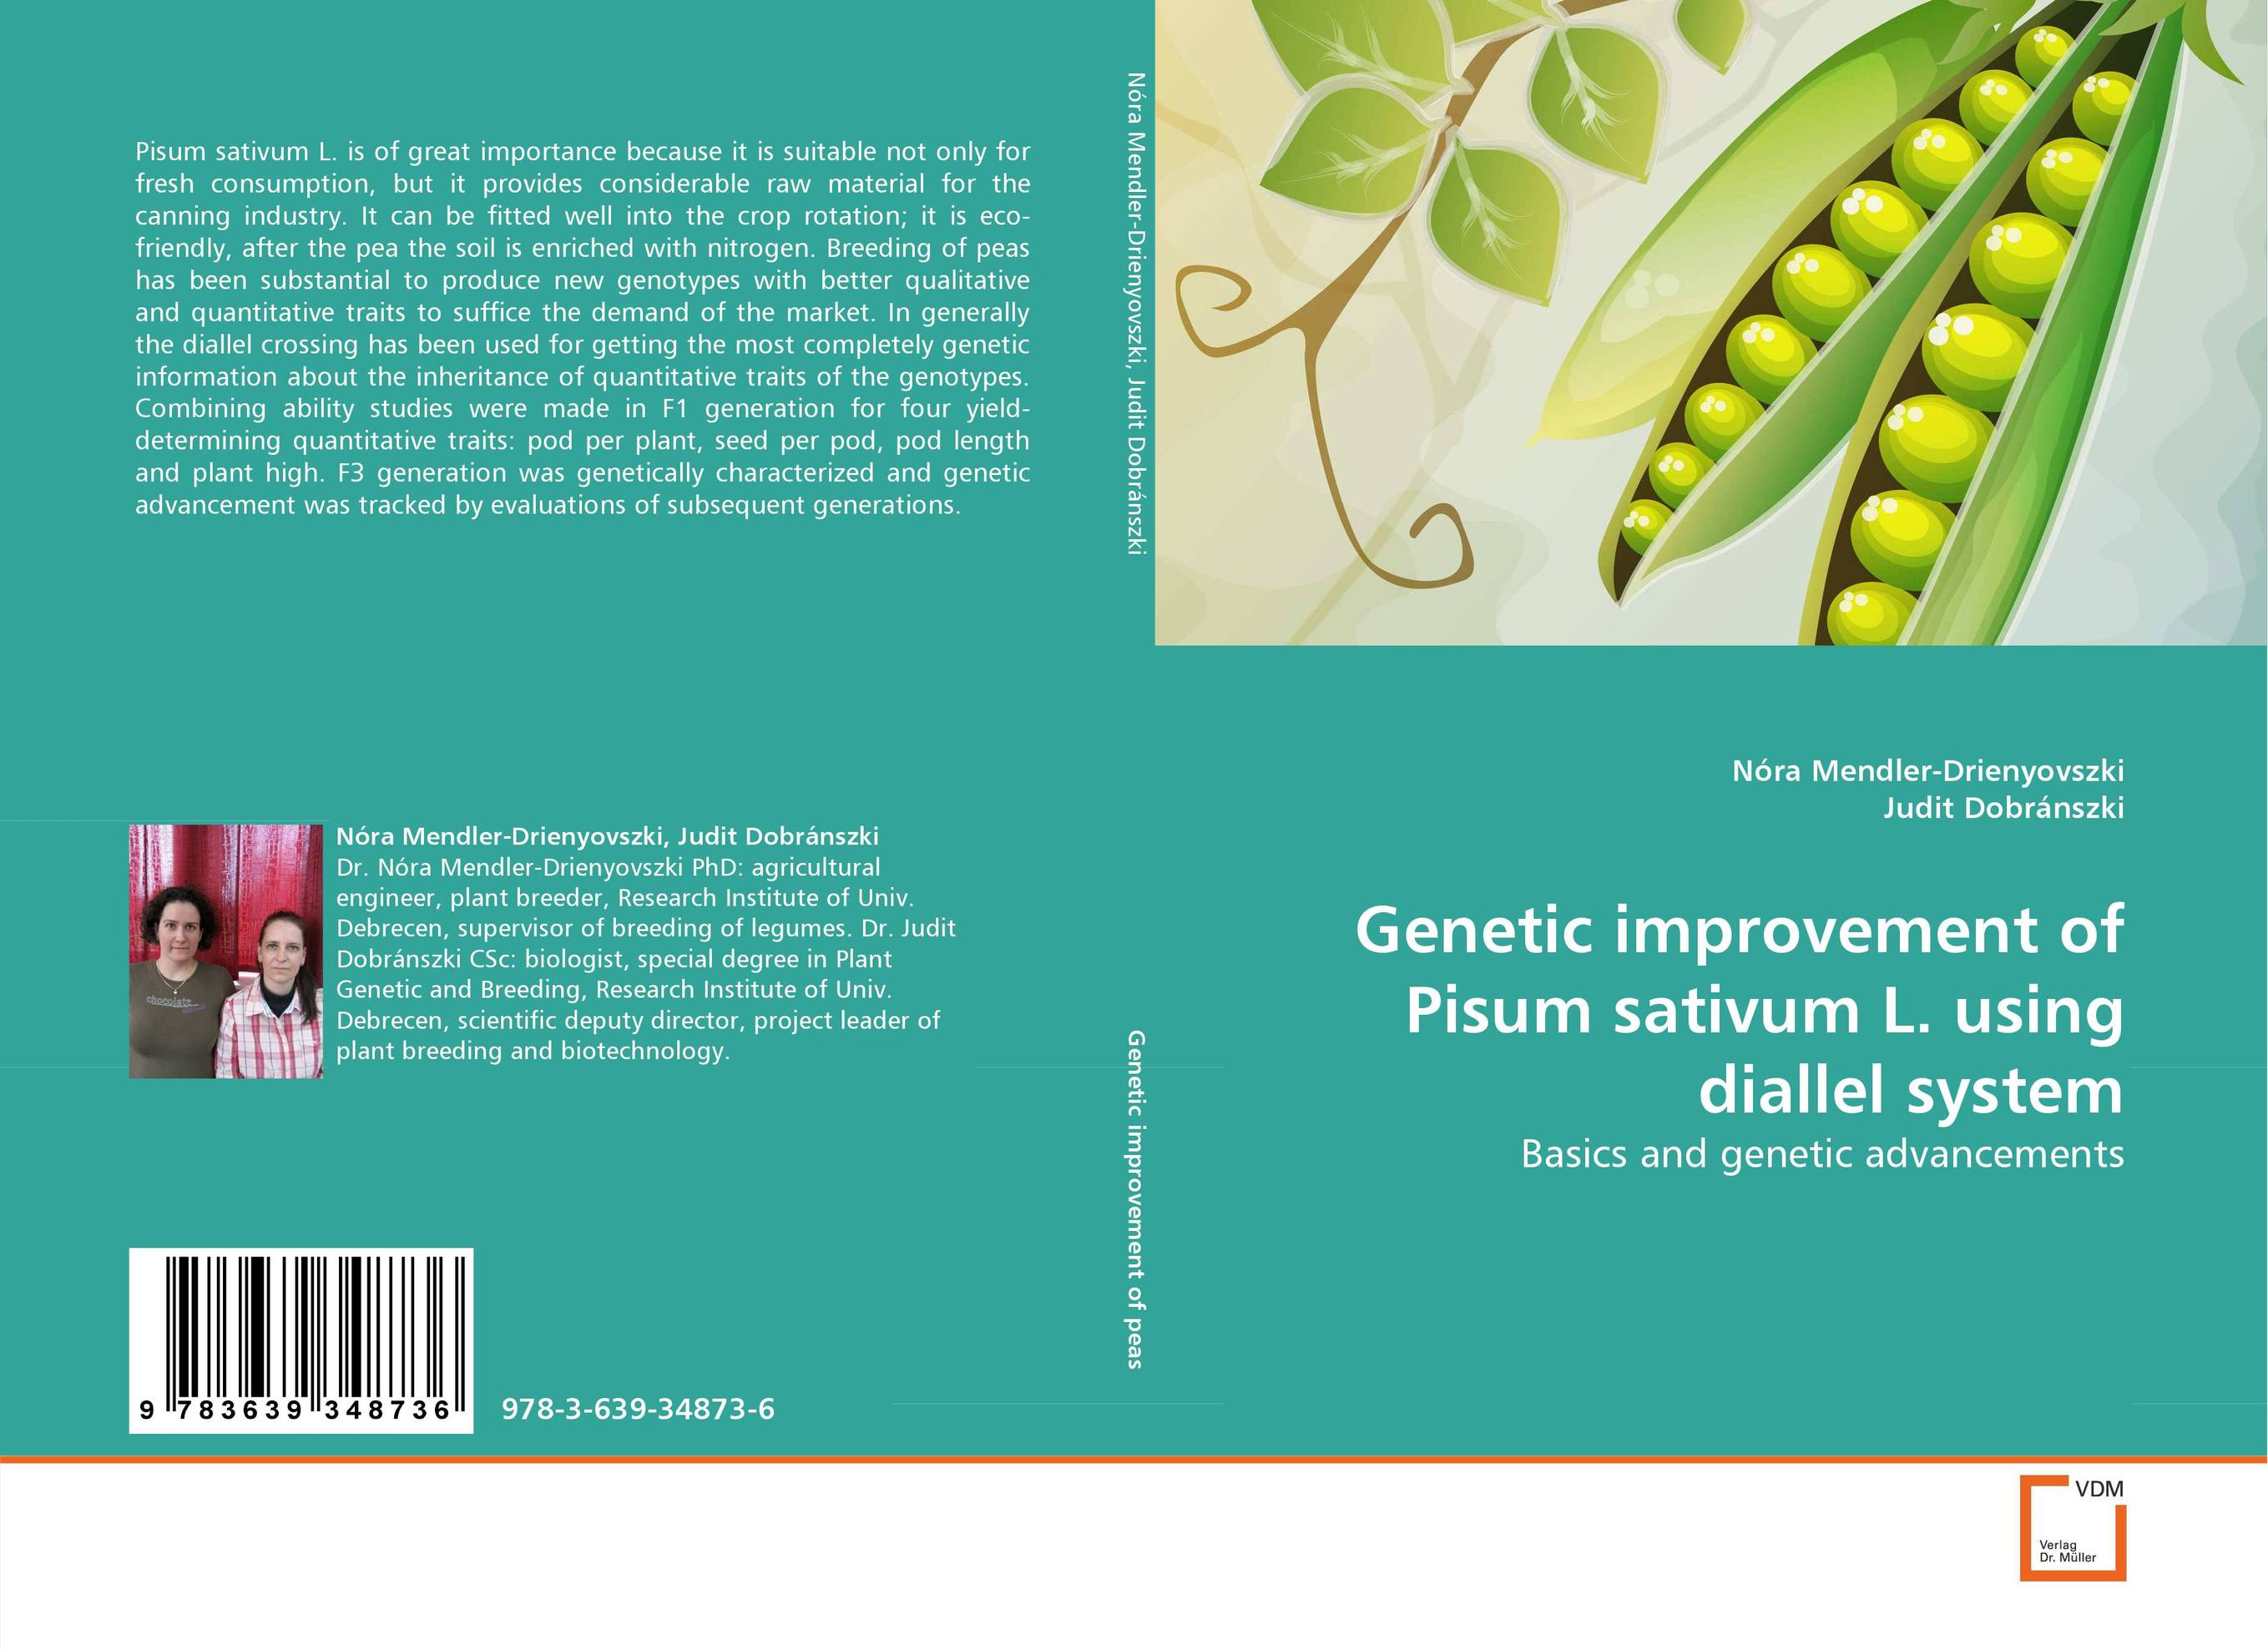 Genetic improvement of Pisum sativum L. using diallel system купить